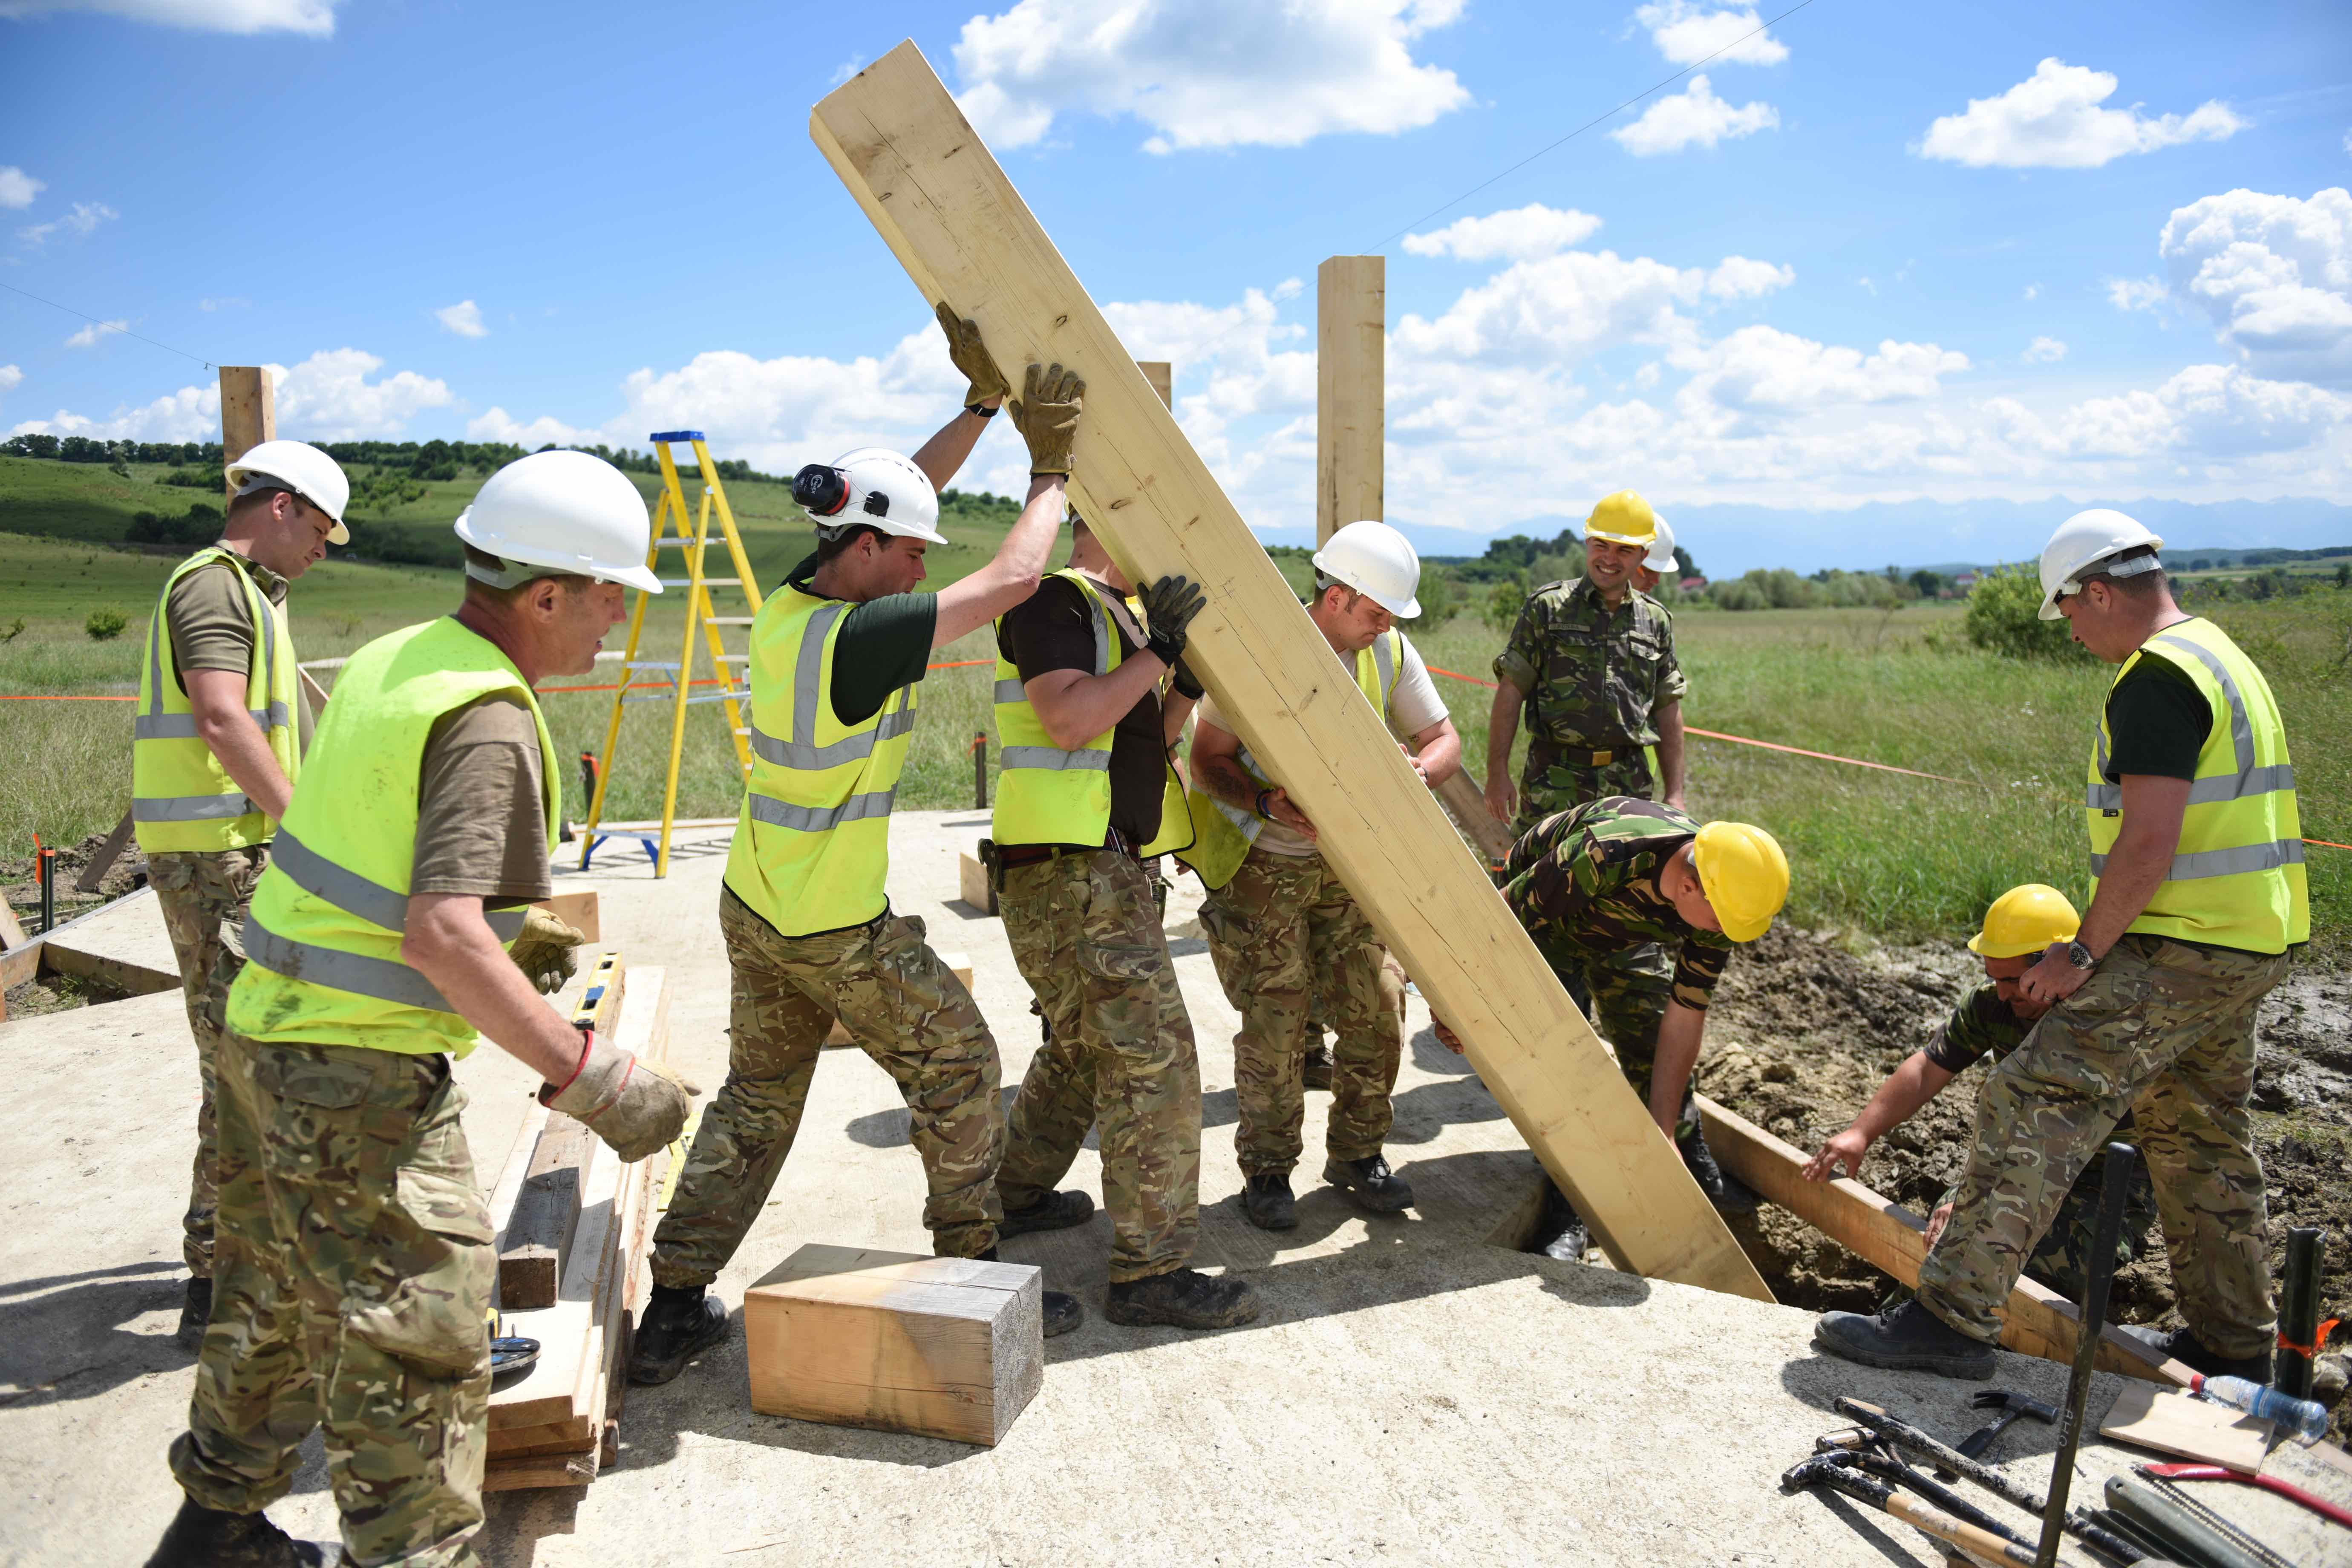 British Armed Forces and Romanian soldiers worked together to erect several buildings throughout the new training ranges, from a multipurpose shelter to a light demolition training range where soldiers can practice demolition of objects like doors and windows. Building the structures was no easy task considering the amount of rain during construction. Soldiers made fast work of sunny days. (Jen Judson/Staff)